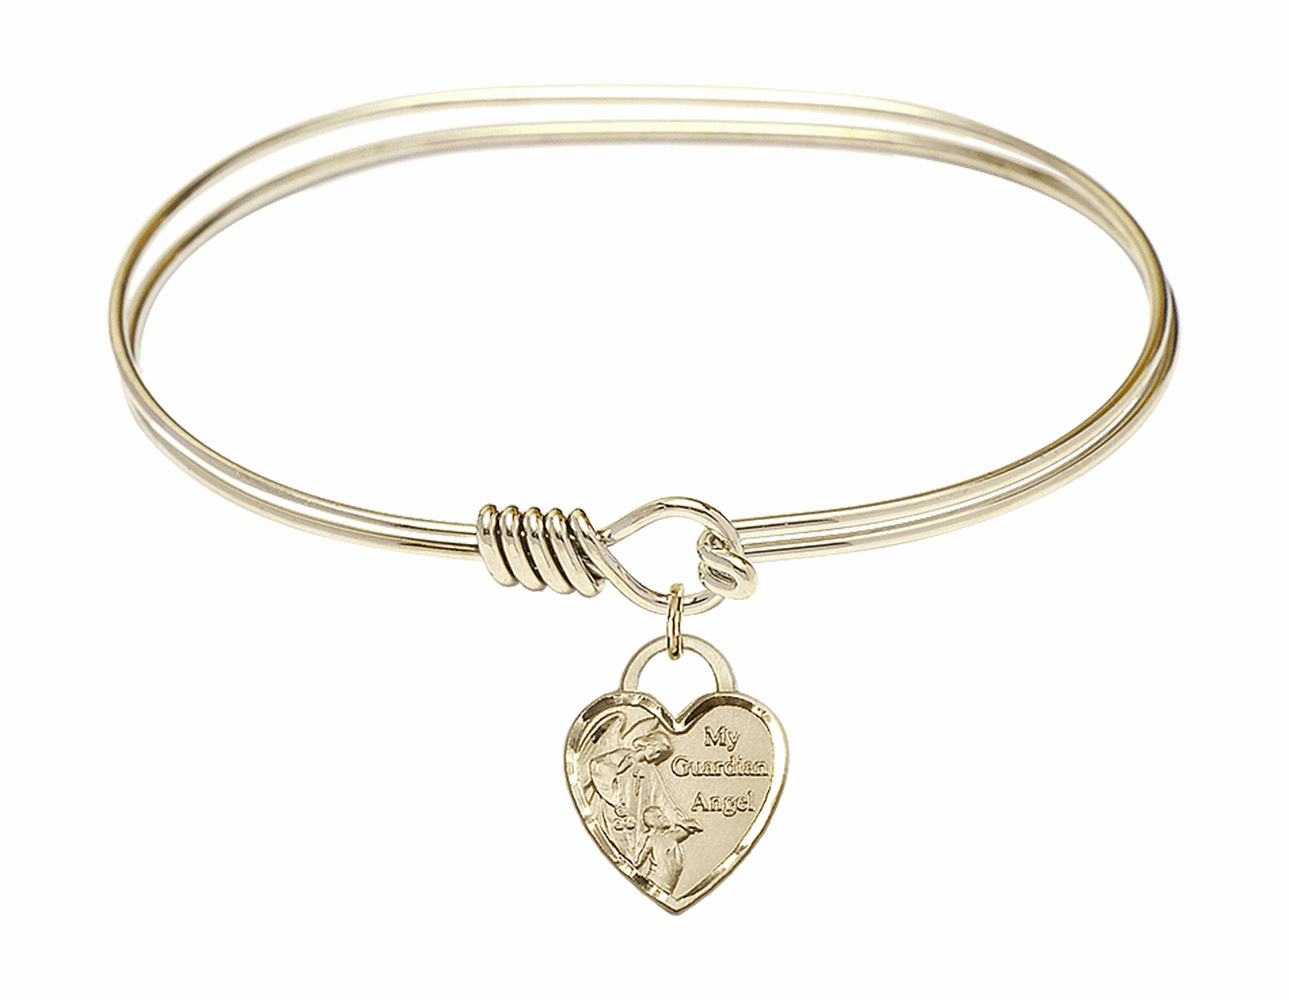 Round Eye Hook Bangle Bracelet w/Heart My Guardian Angel Charm by Bliss Mfg